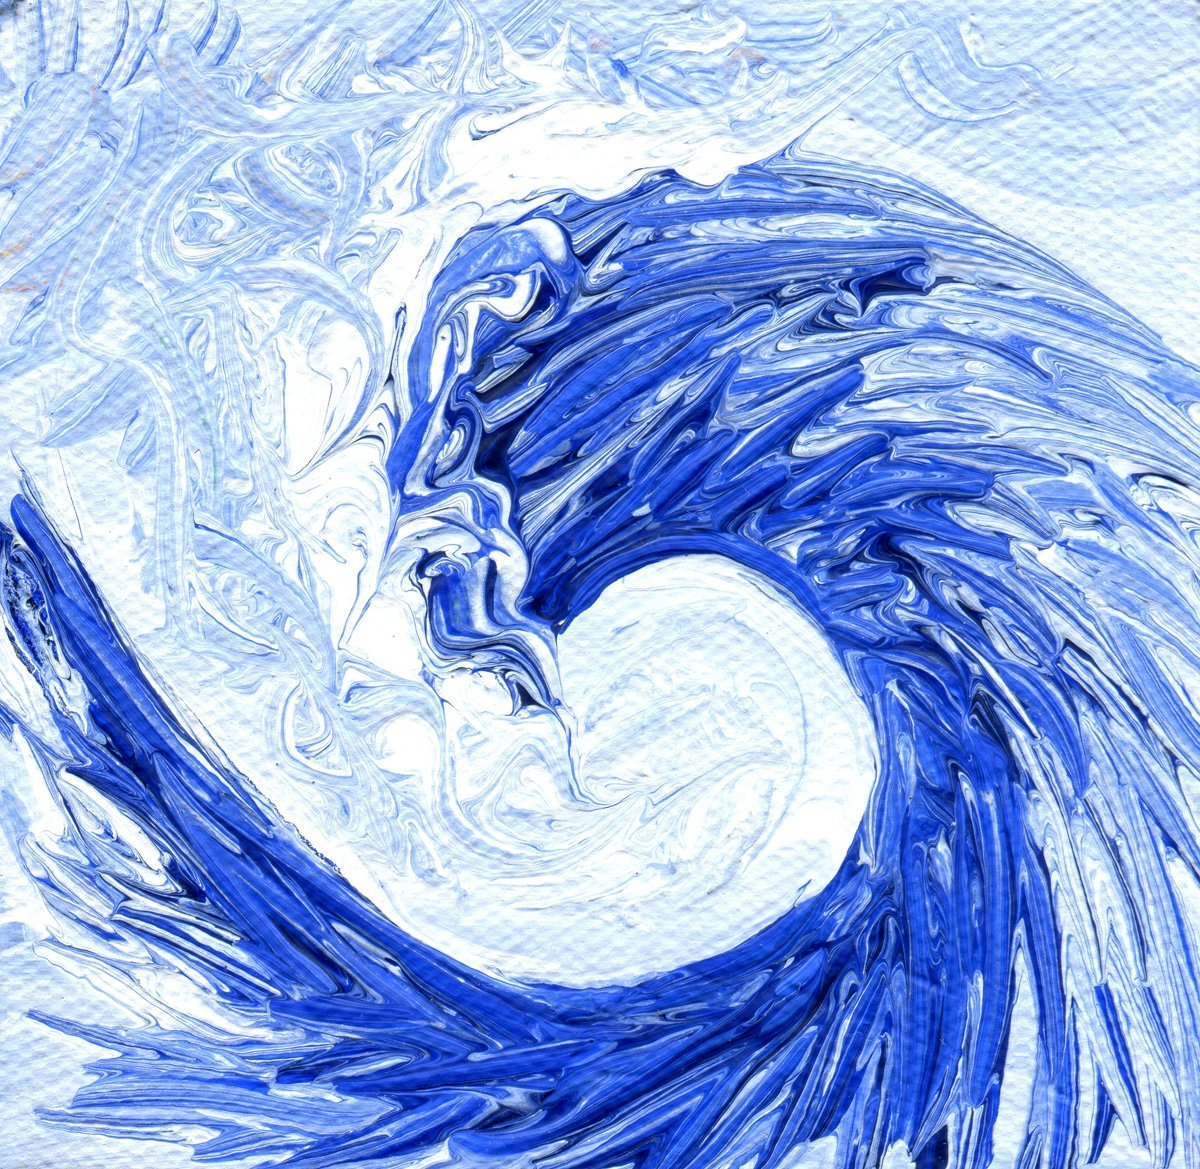 The image shows a piece of artwork by Jina Wallwork. It is a painting of the sea. Stylistically this piece of artwork has links with expressionism.